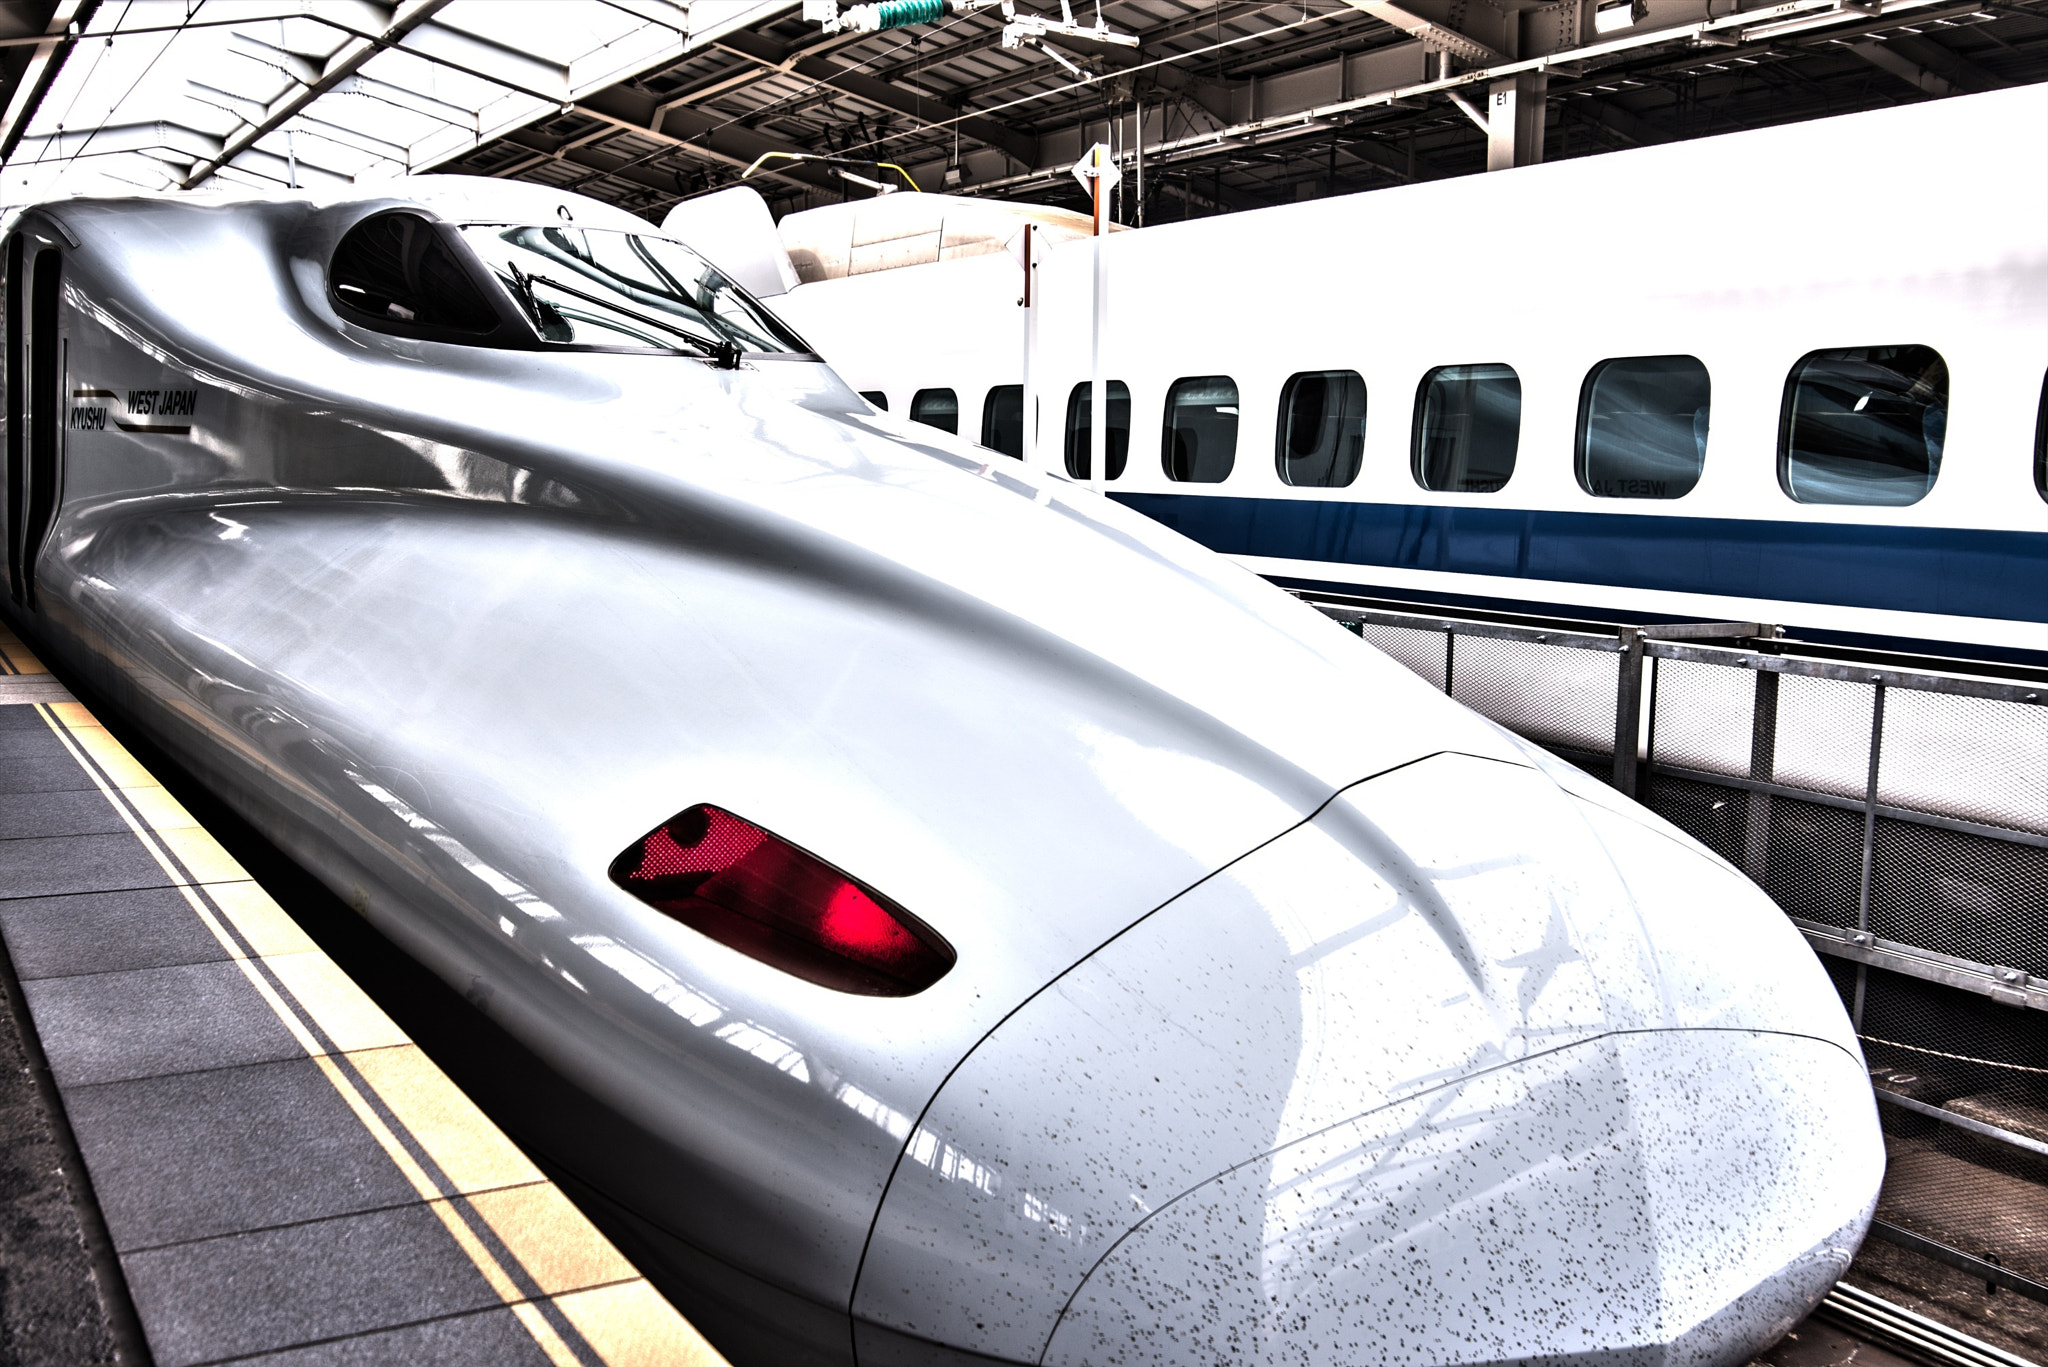 Photograph Shinkansen HDR by hugh dornan on 500px